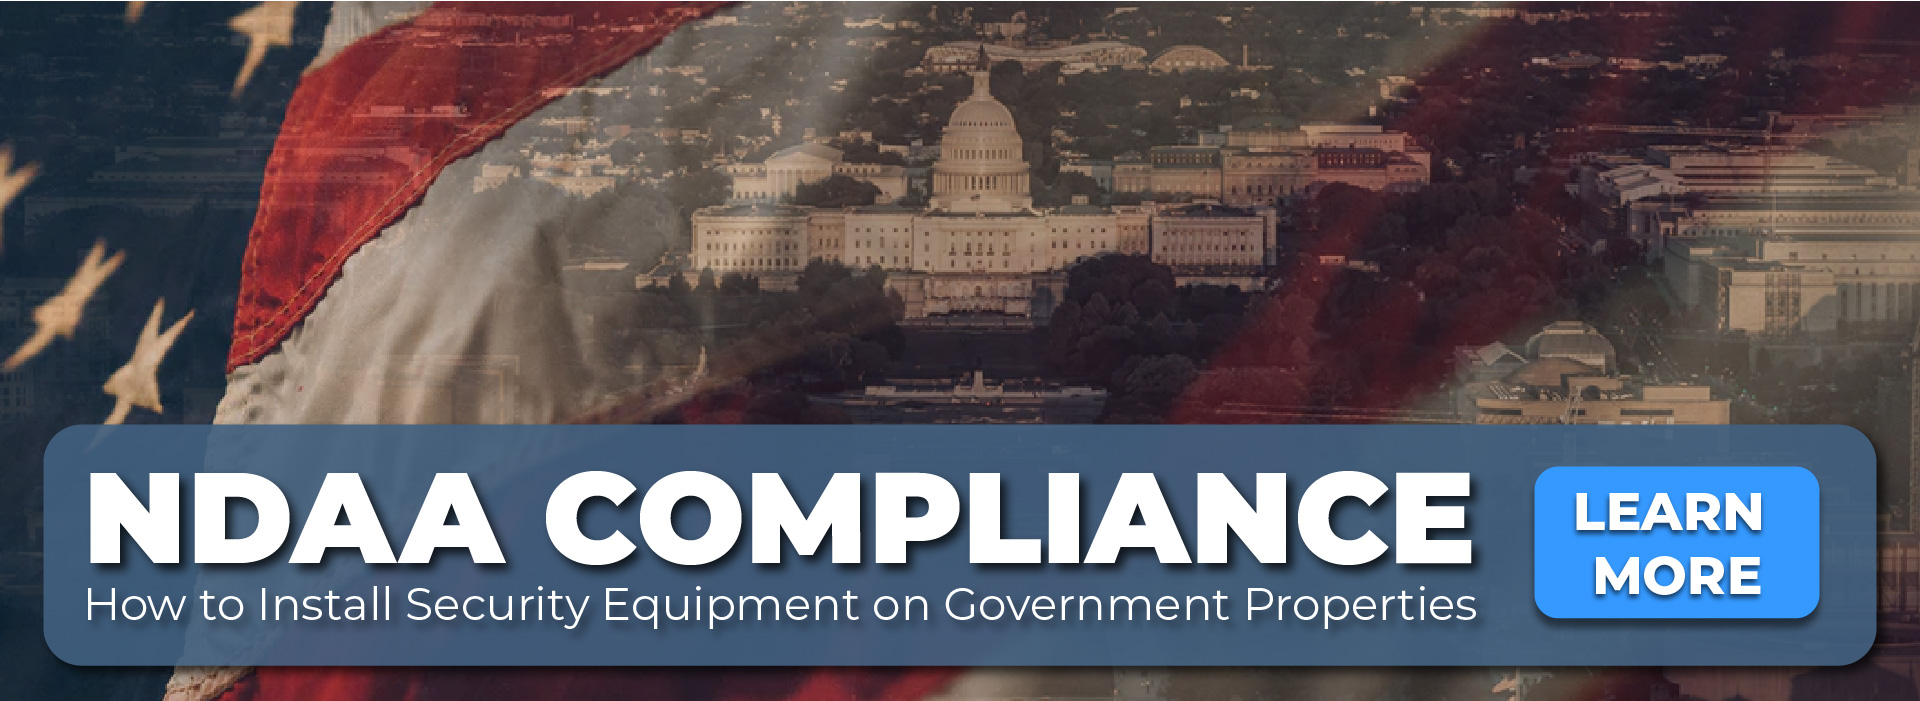 NDAA Compliance: Which Products Can You Install on Government Properties?